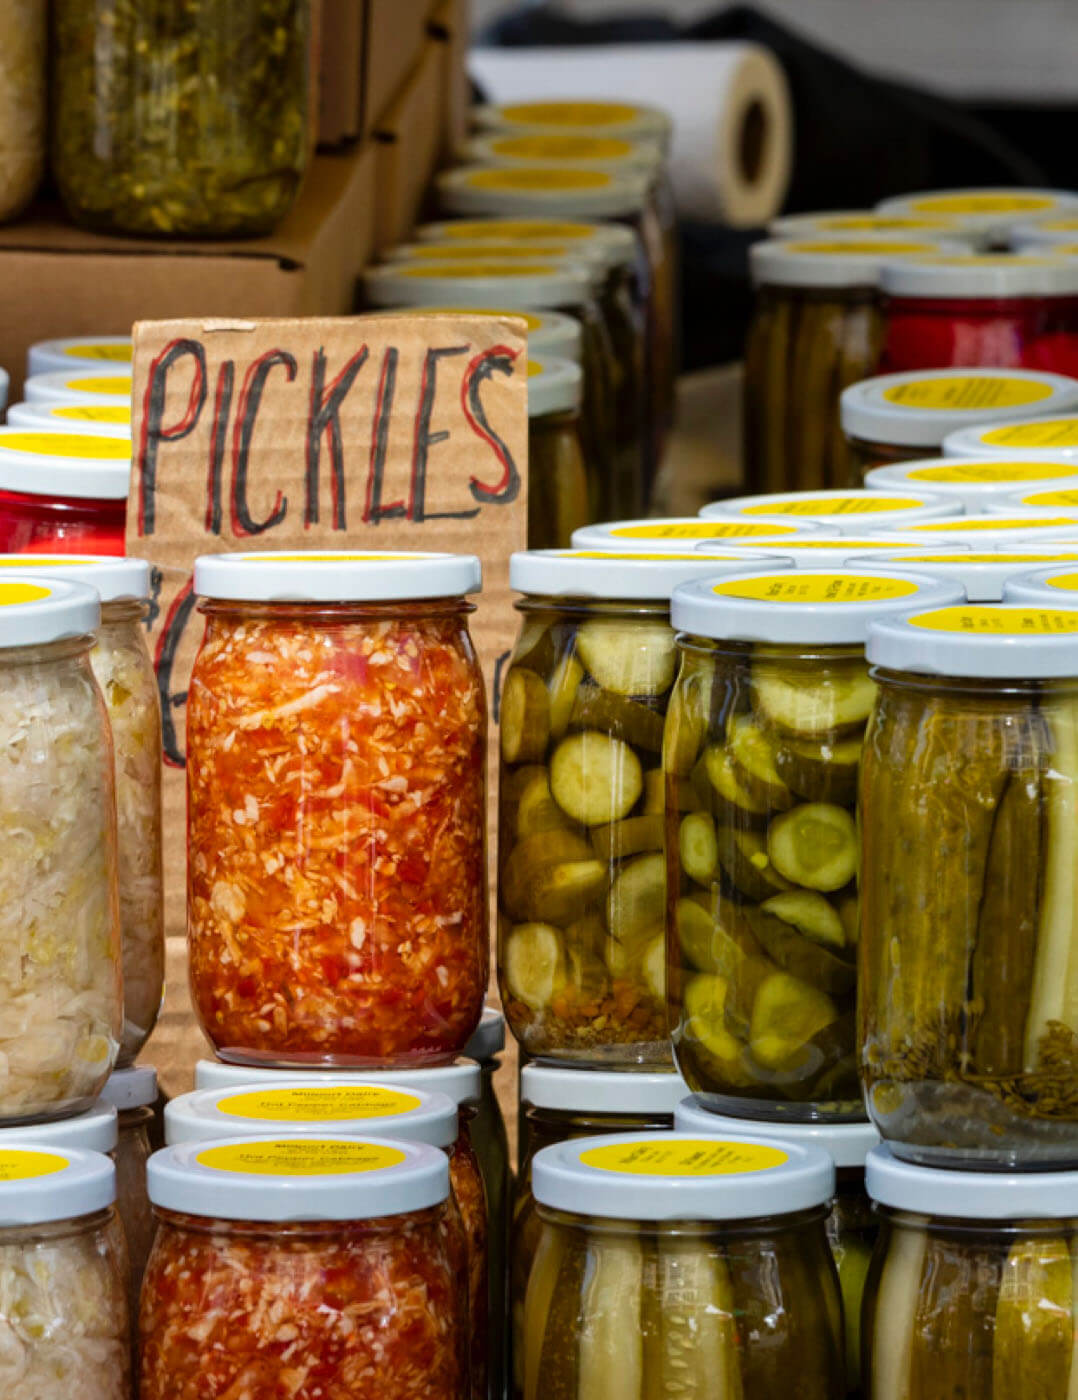 Stacks of jars containing pickles in a shop display